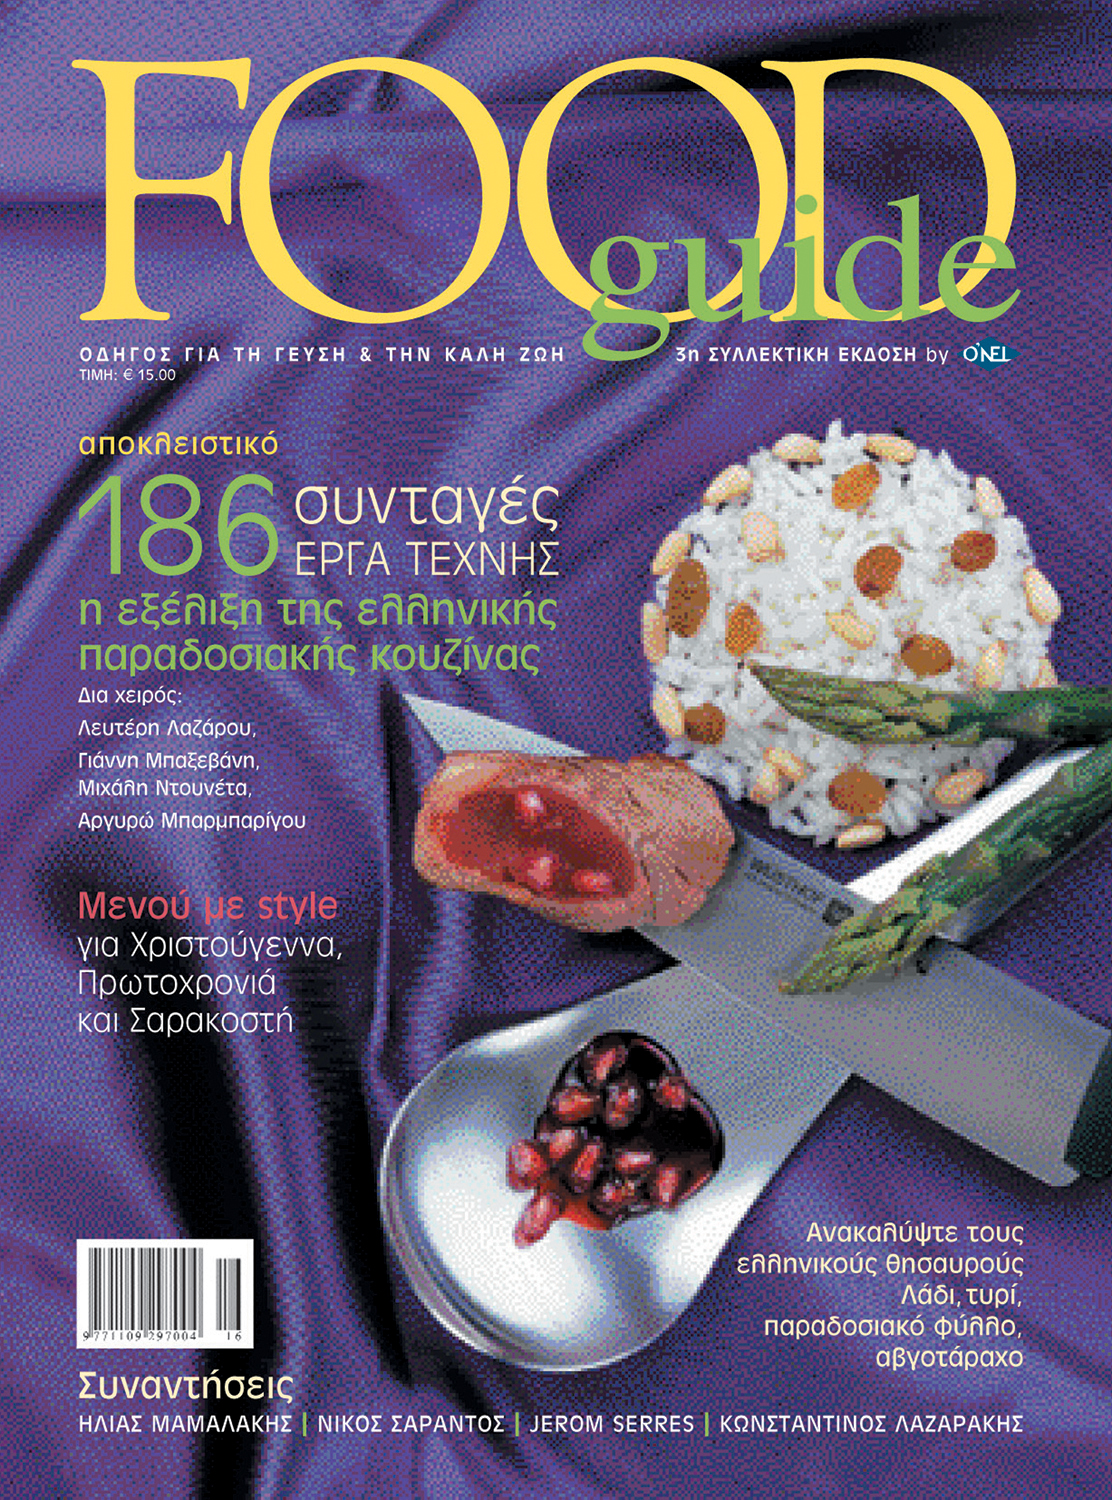 Food guide 3rd special edition by O'NEL